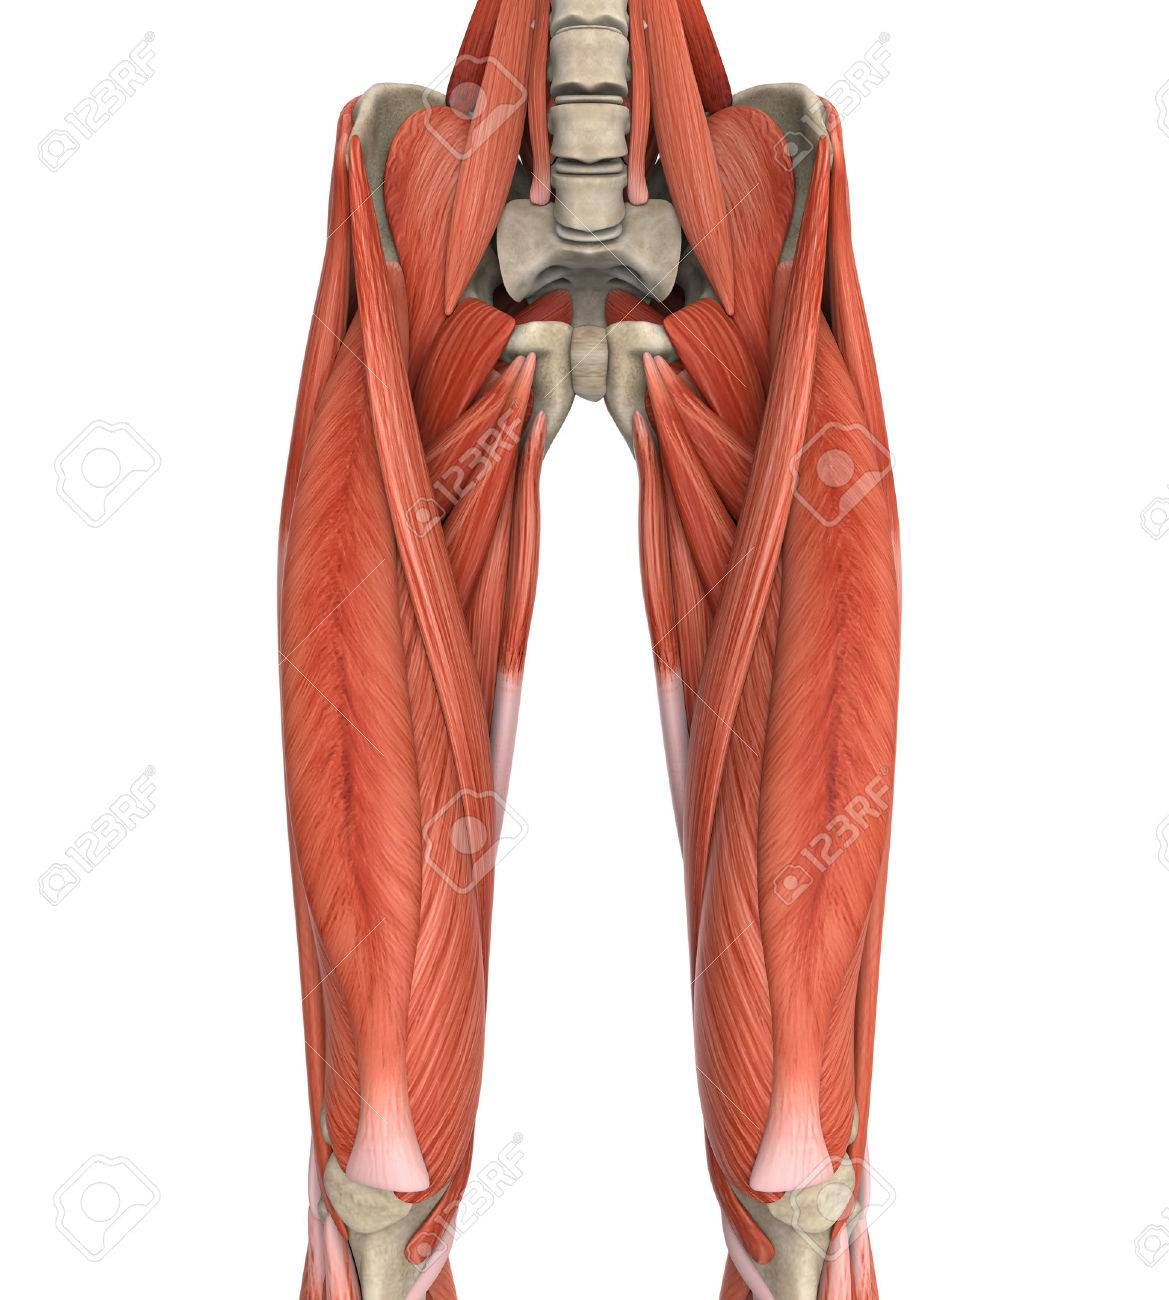 Upper Legs Muscles Anatomy Stock Photo, Picture And Royalty Free ...